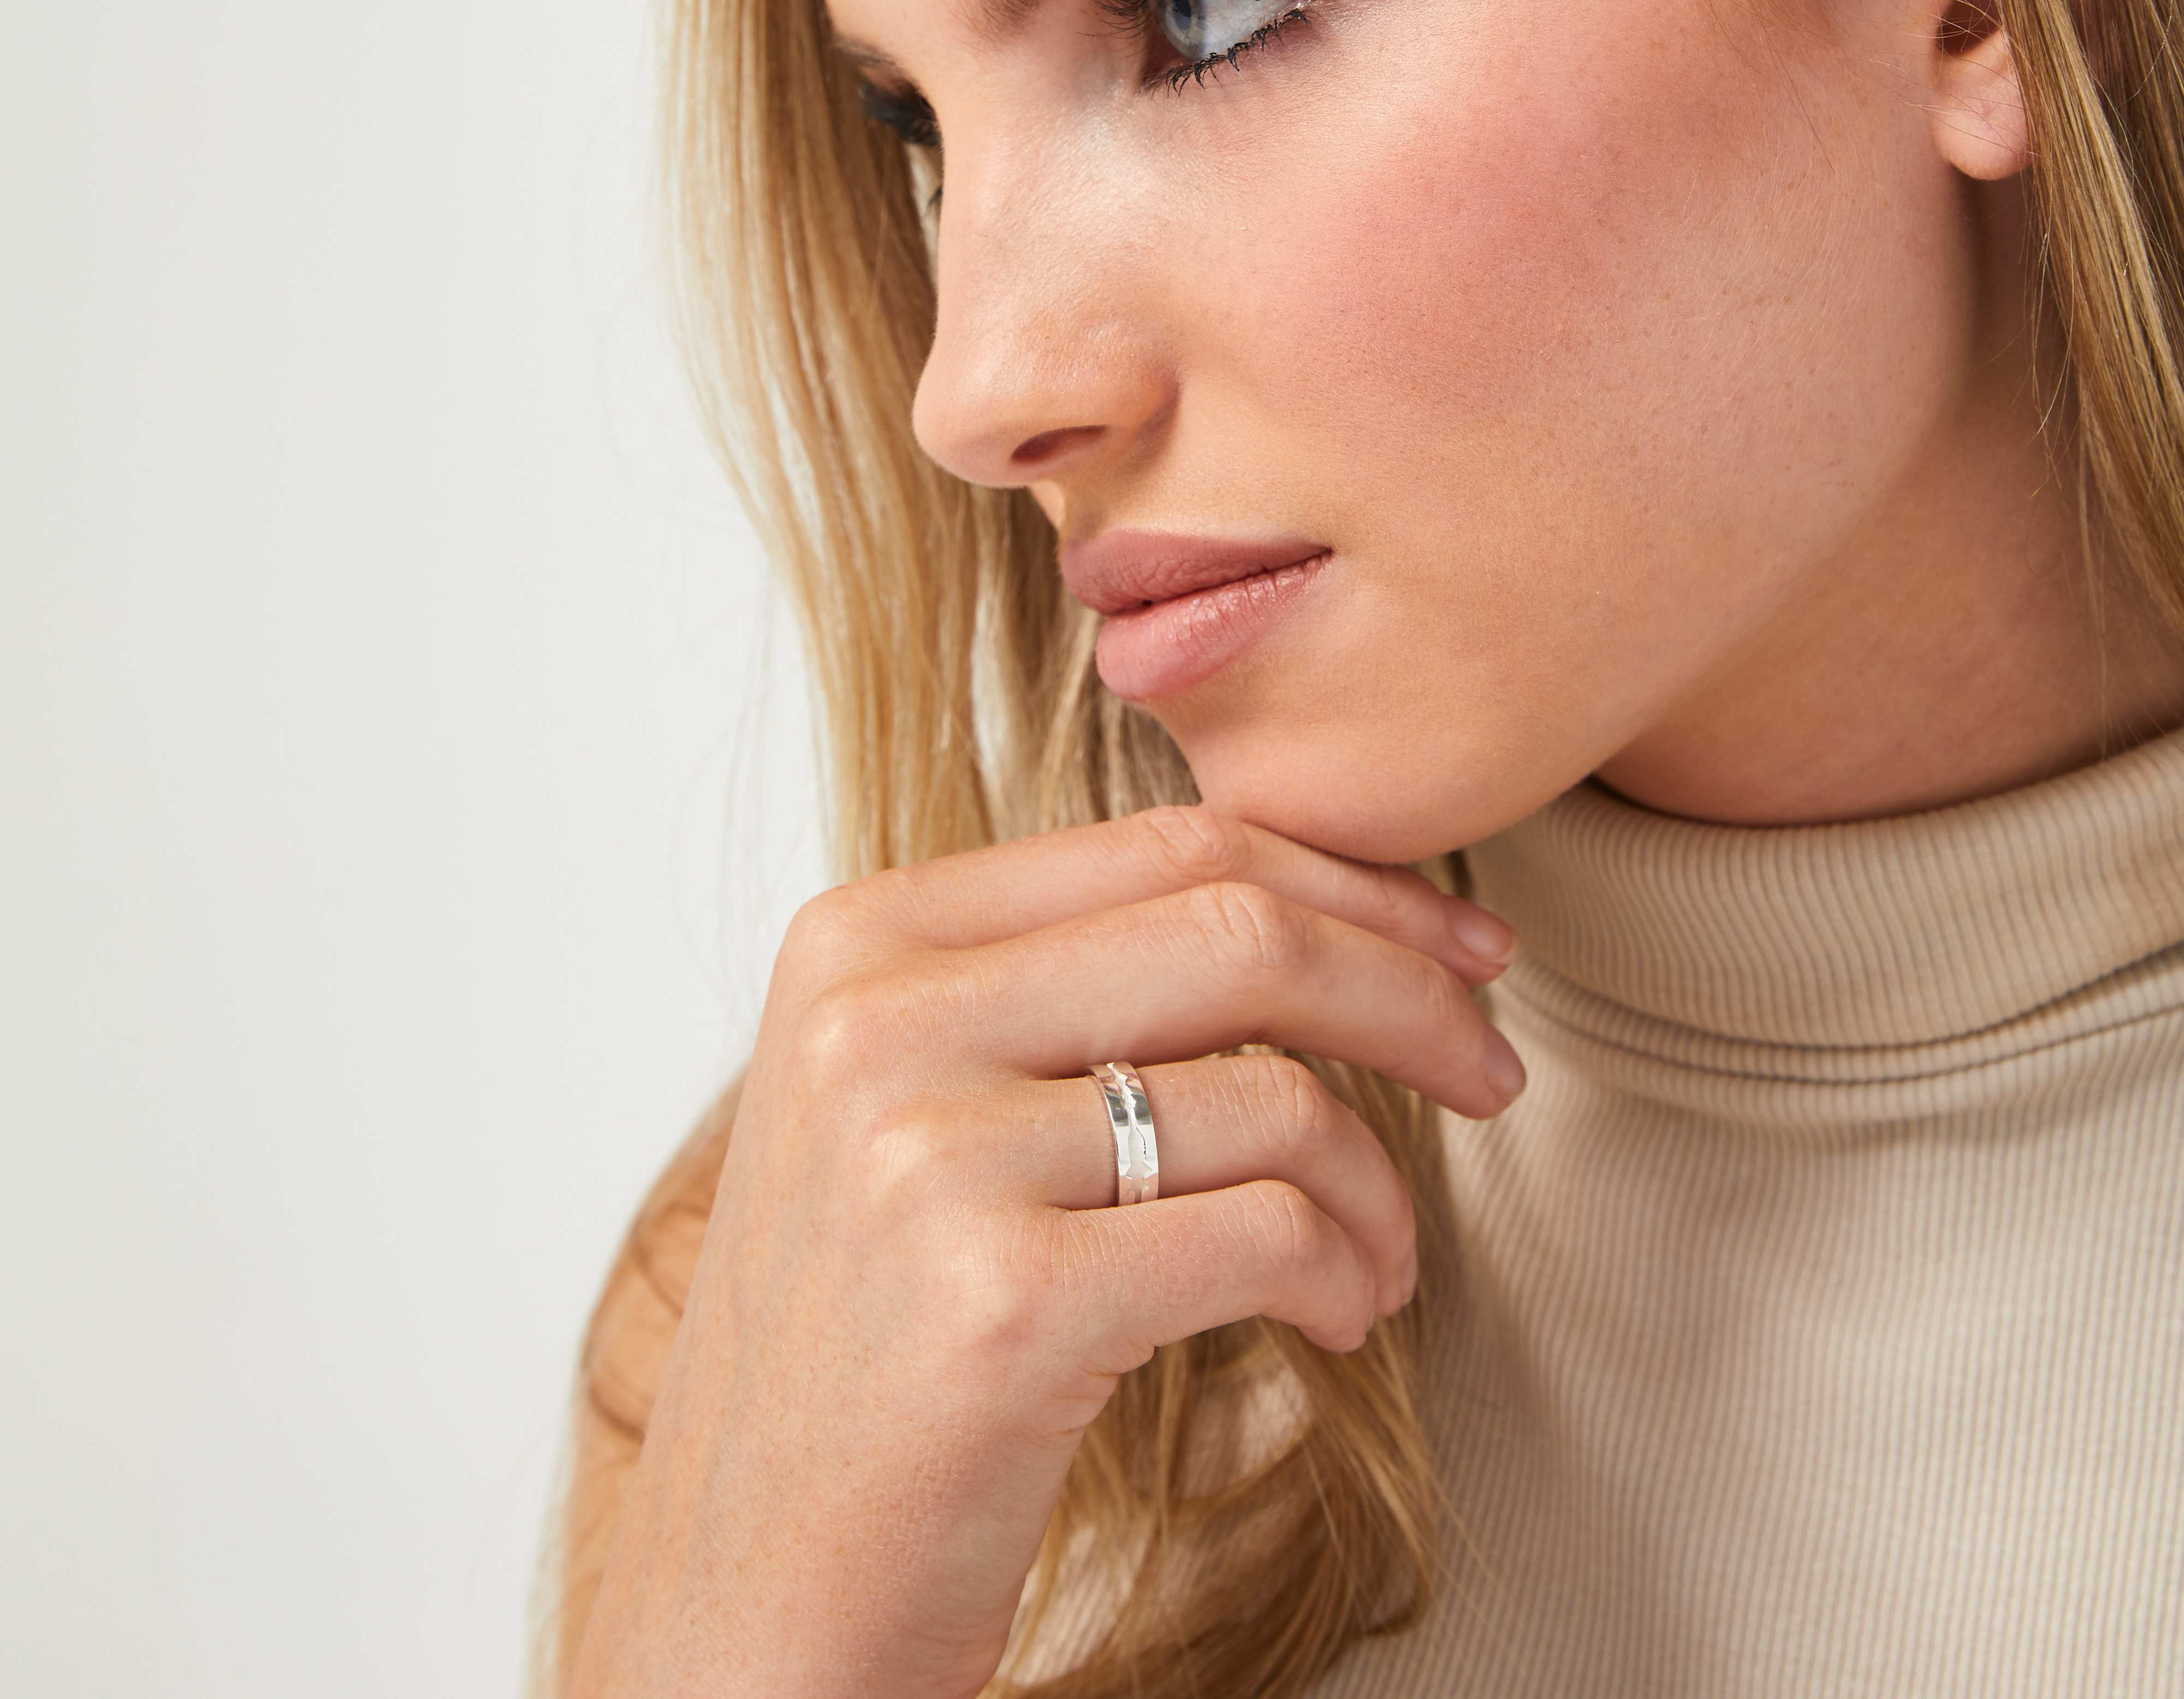 The Outer Wave Ring in Sterling Silver on a female